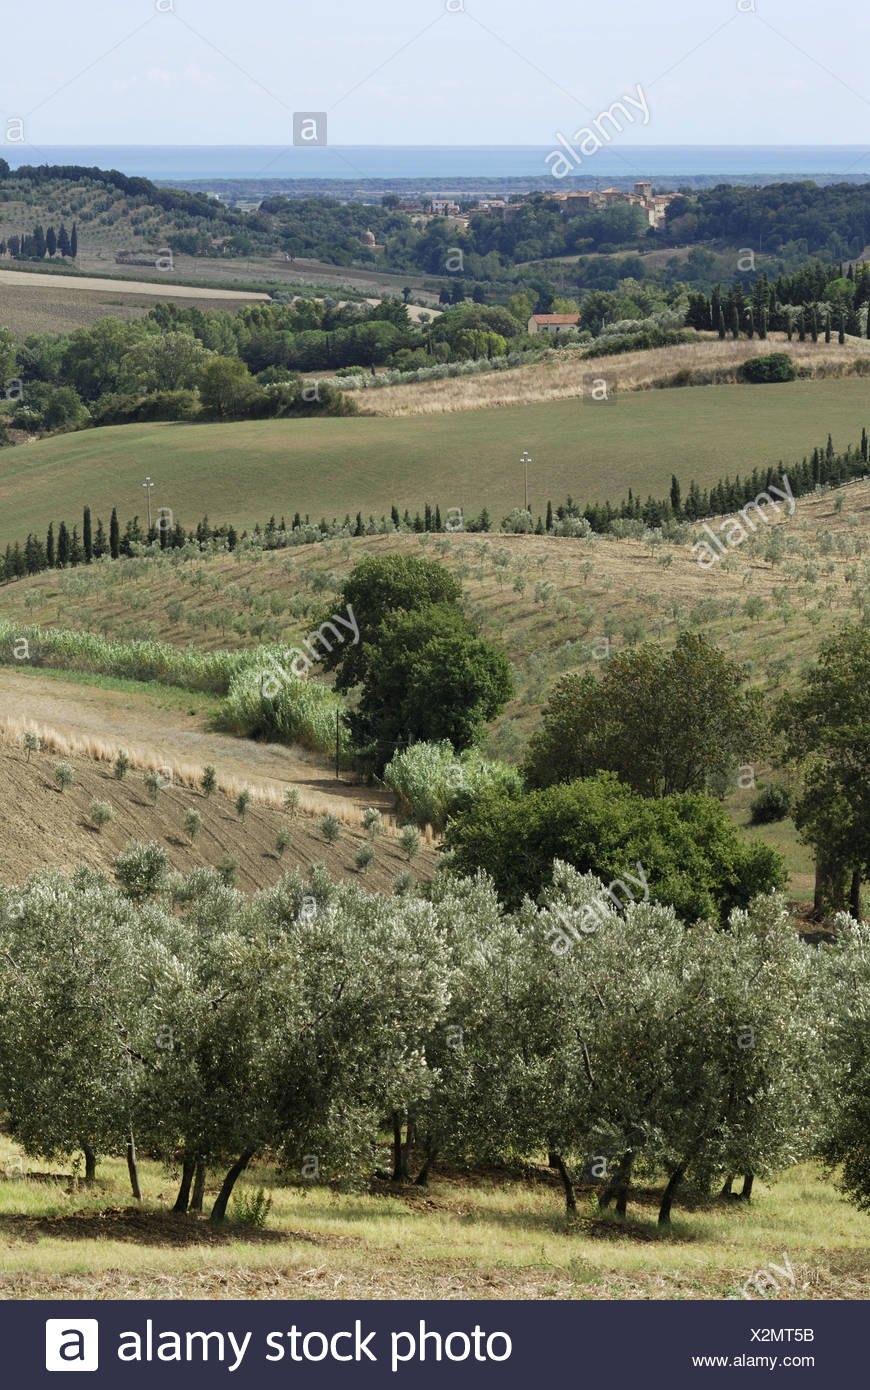 Bibbona Tuscany Italy Gentle rolling hills of the region around Bibbona and the distant mediterranean sea in the background - Stock Image